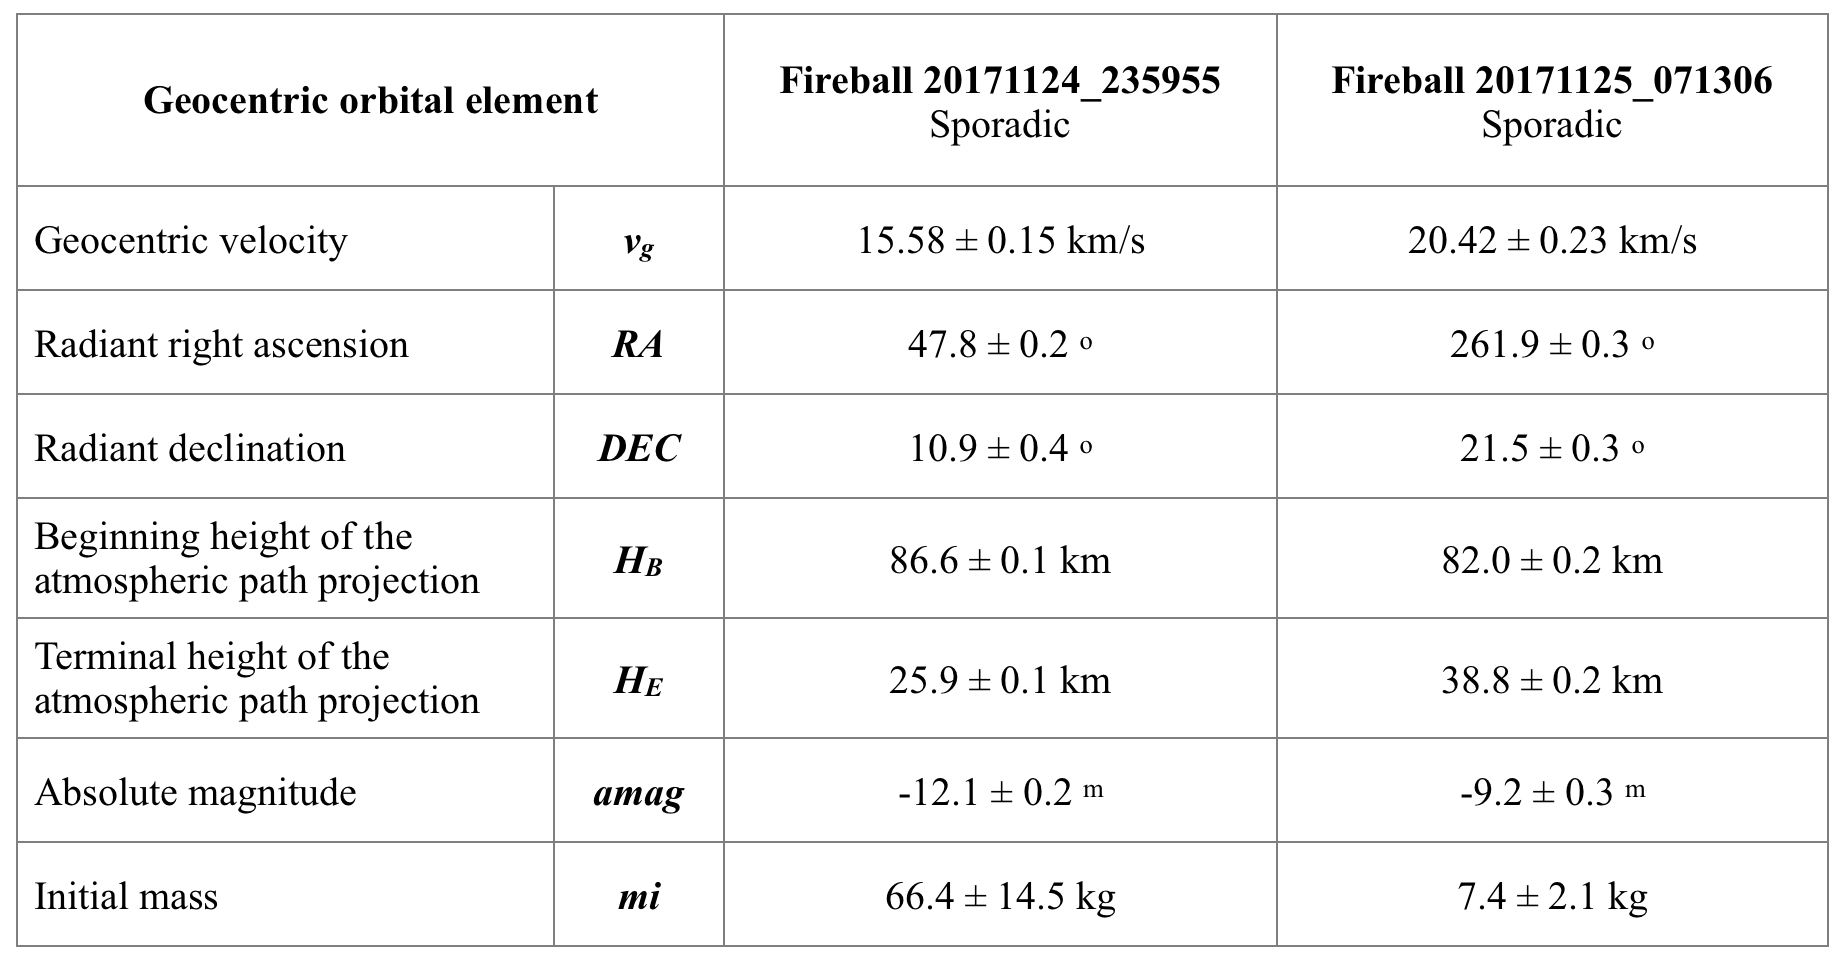 Tab. 2: Geocentric radiant, geocentric velocity, beginning and terminal height of fireballs, calculated using software UFOOrbit (SonotaCo 2009), the effect of deceleration is considered in the calculation.